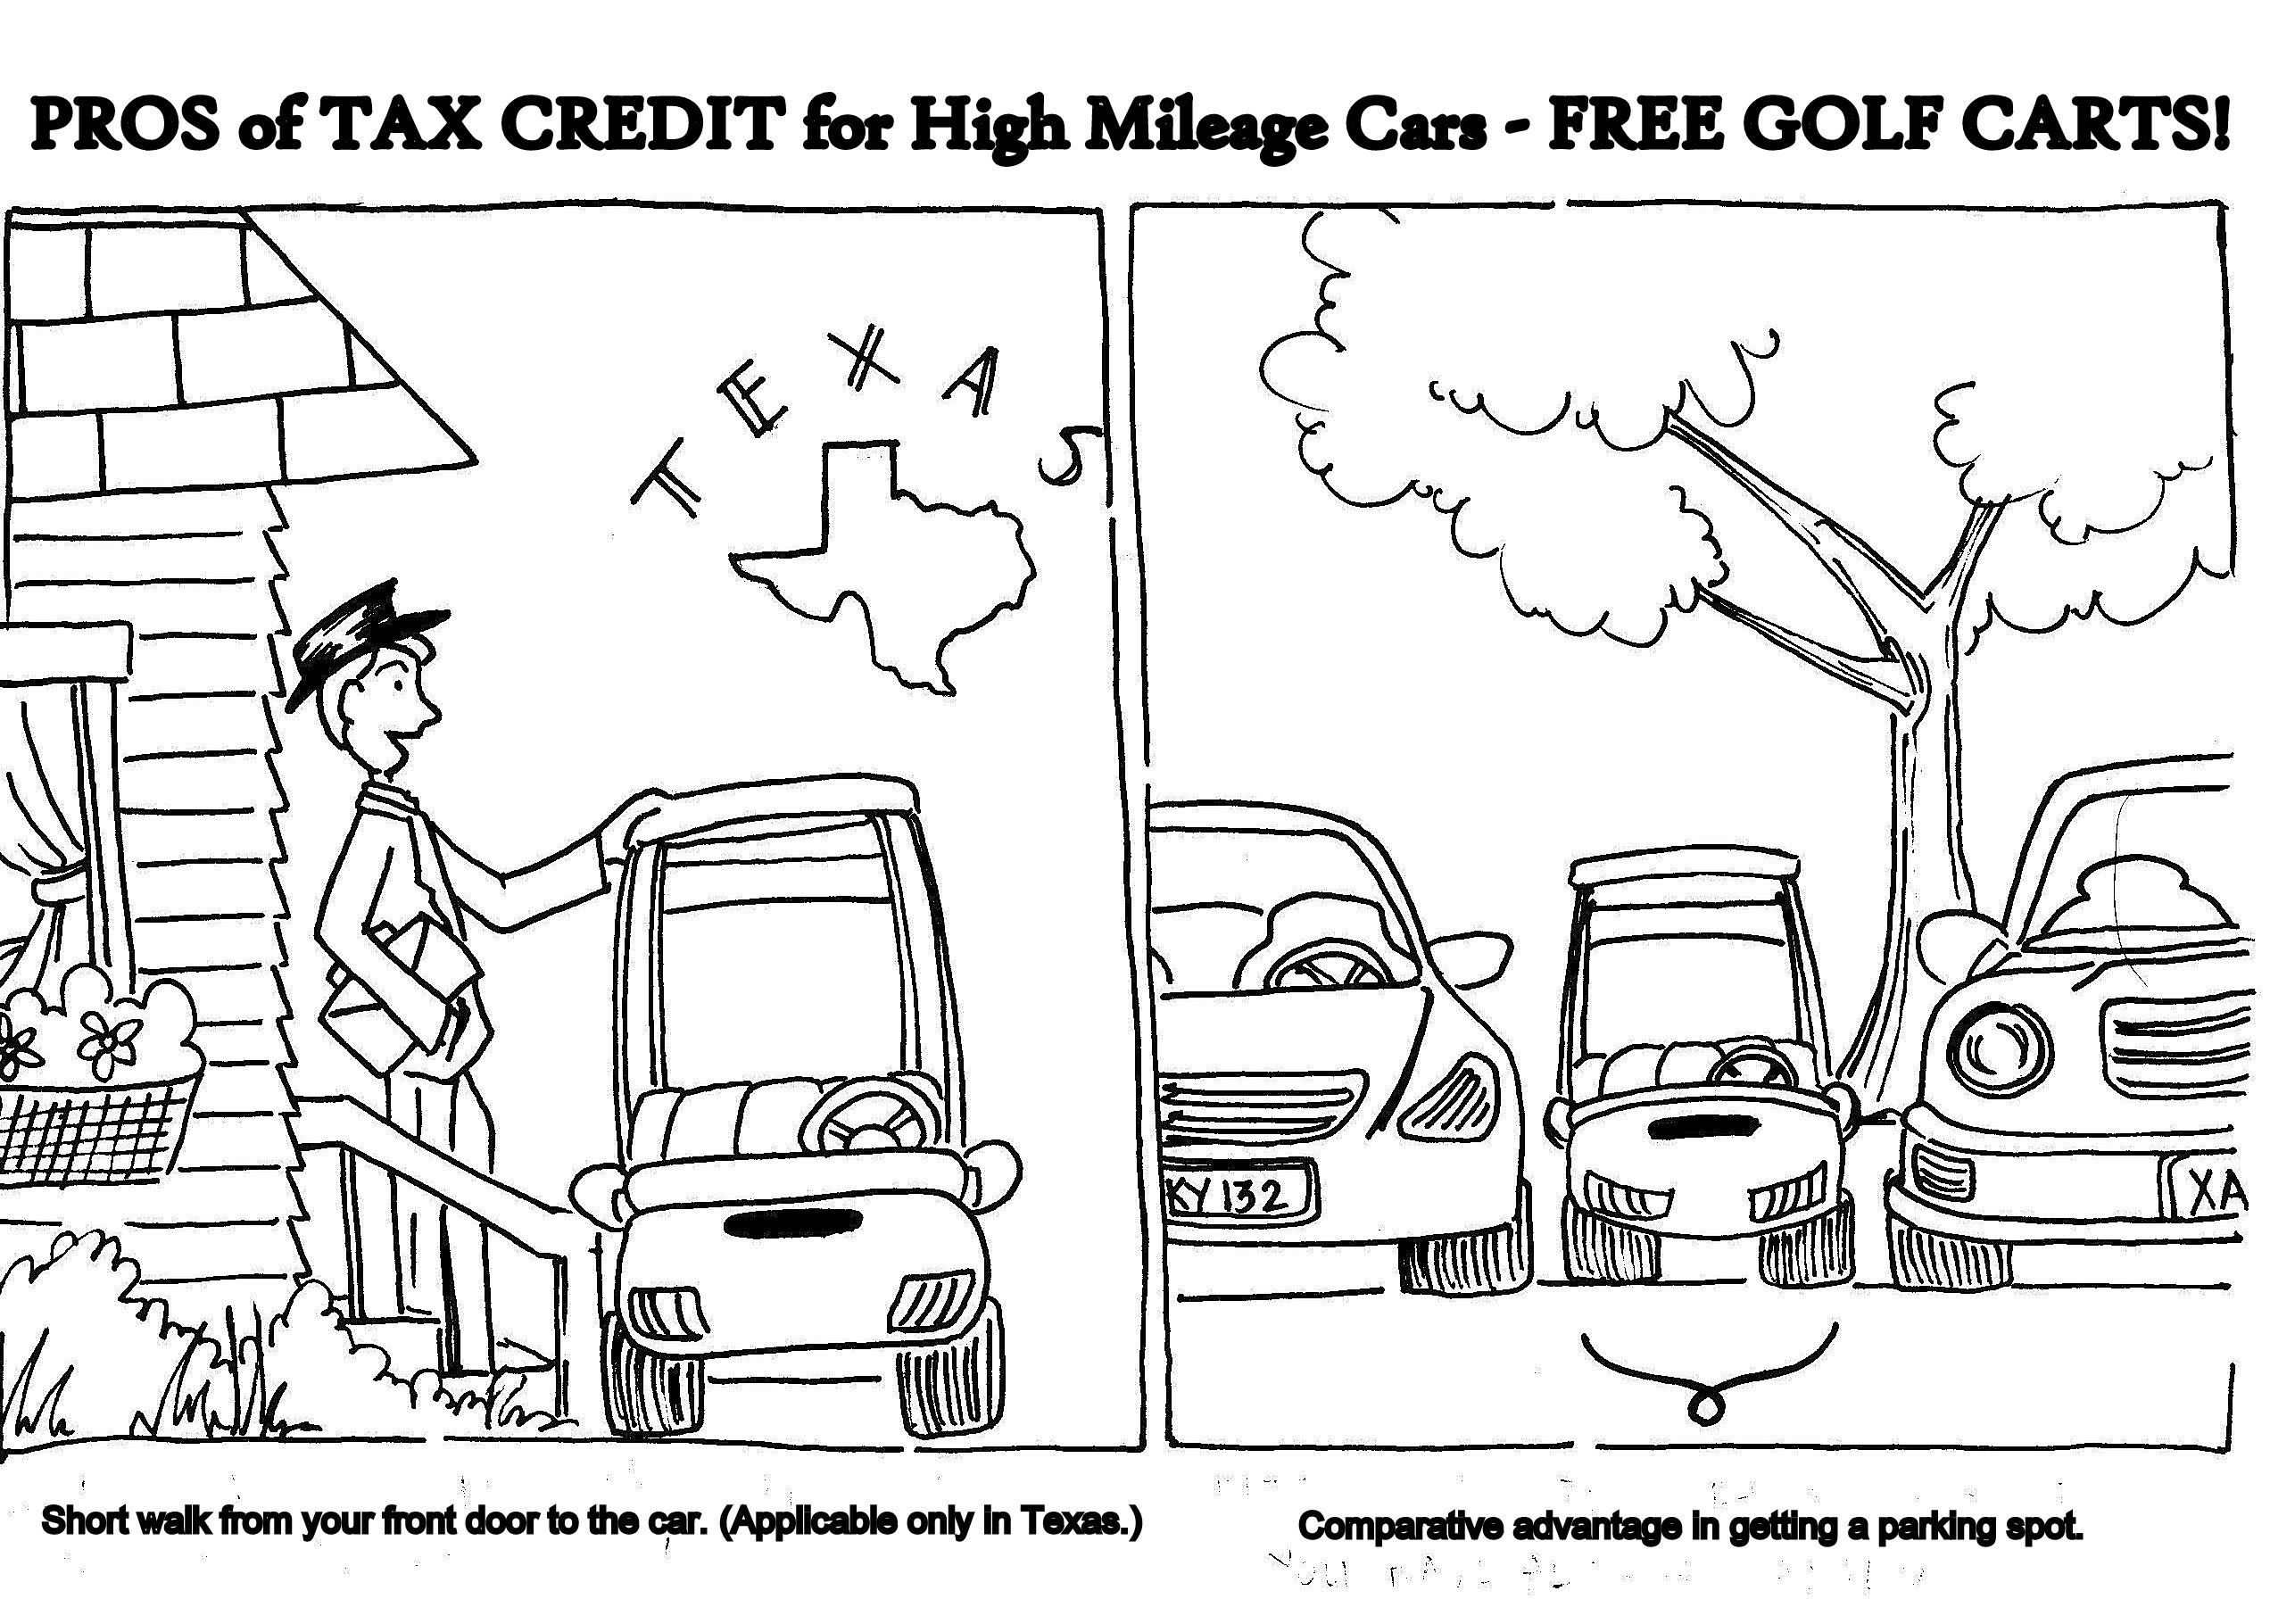 Golf cart purchases fall under new federal tax credit